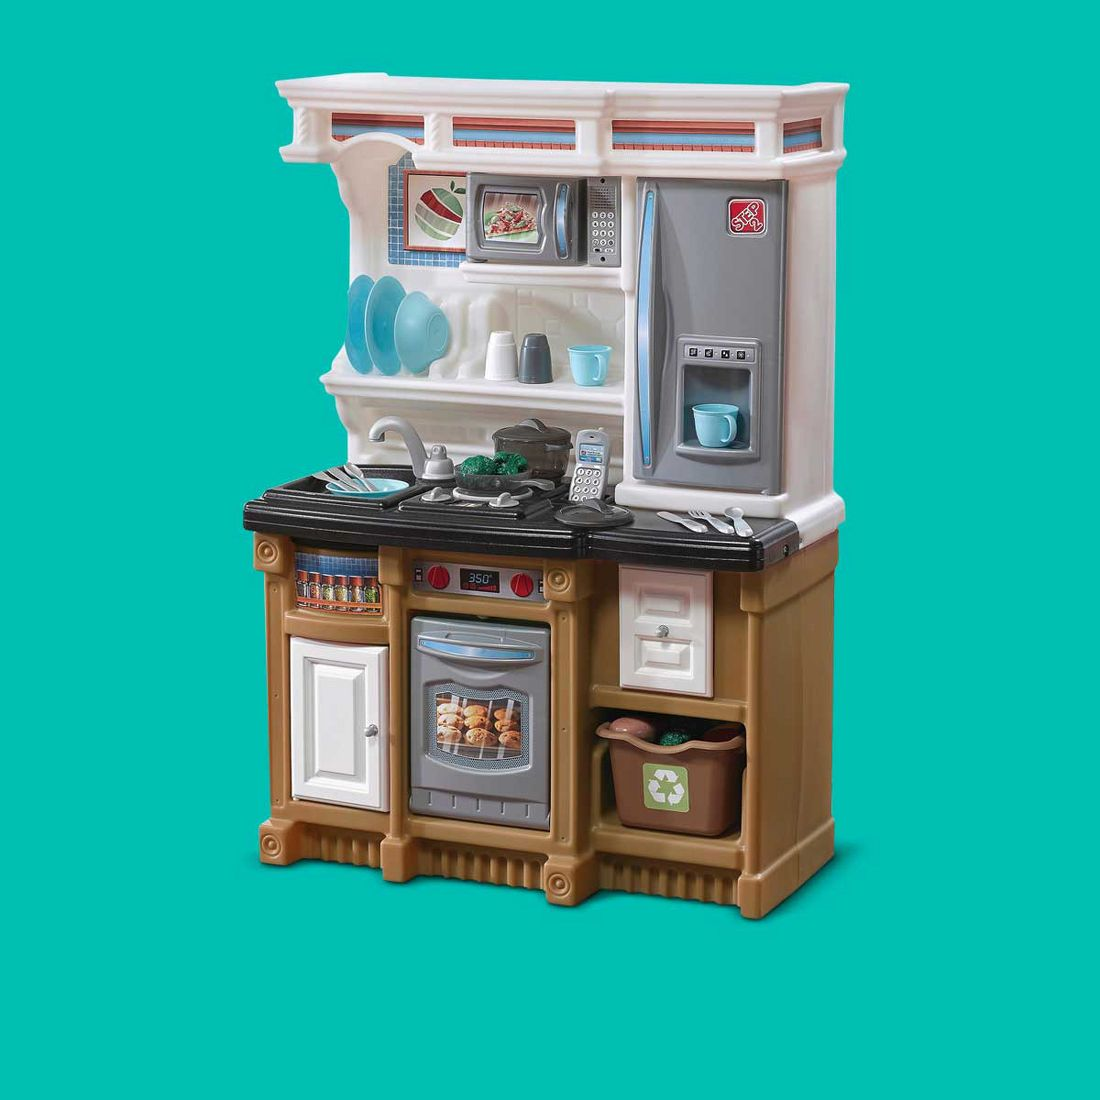 Play Kitchens & Toy Food : Target on wish i was painting, wish i was cooking kitchen, wish i was toys, wish i was kitchen playset, wish i was dolls, wish i was cleaning set,